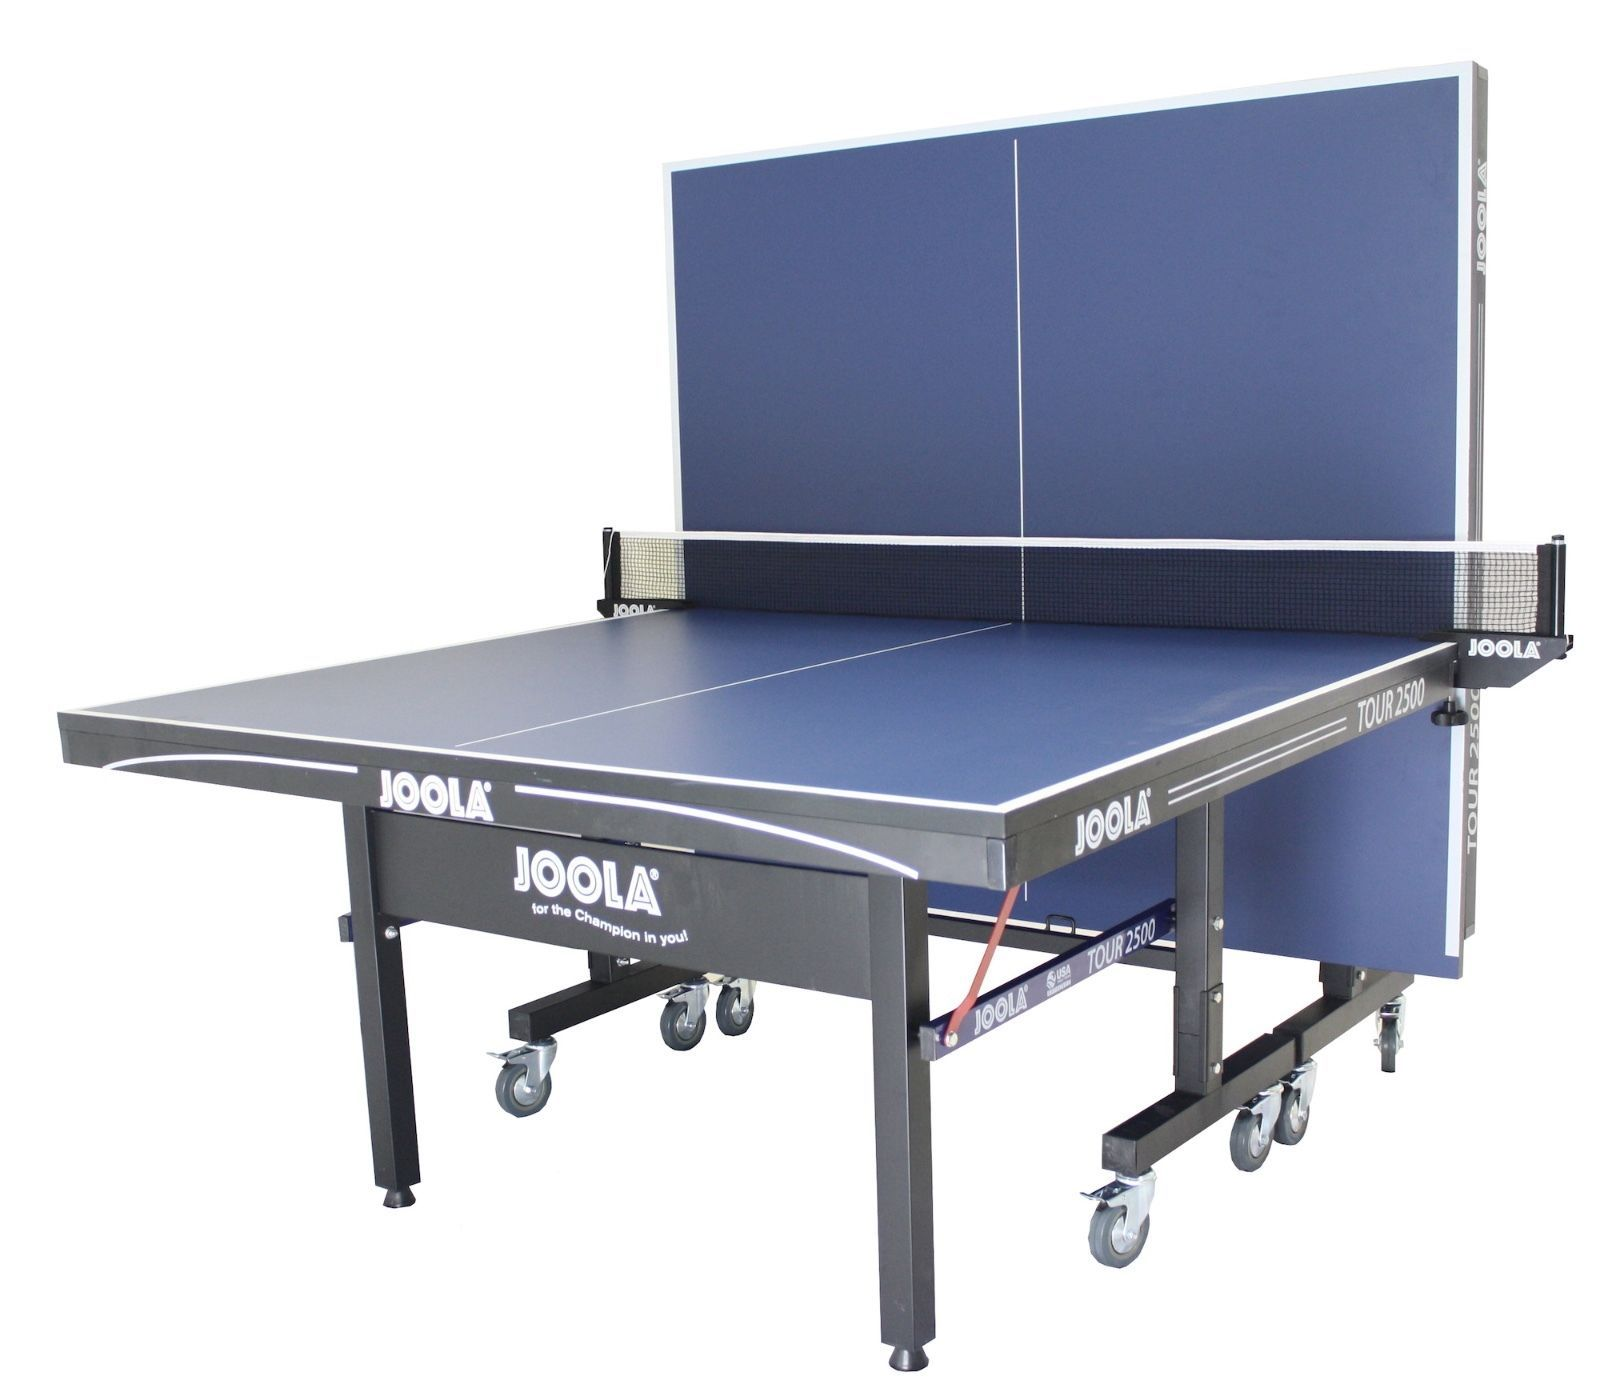 Tables 97075: Joola Tour 2500 Table Tennis Table And Net Set (1In Table Top